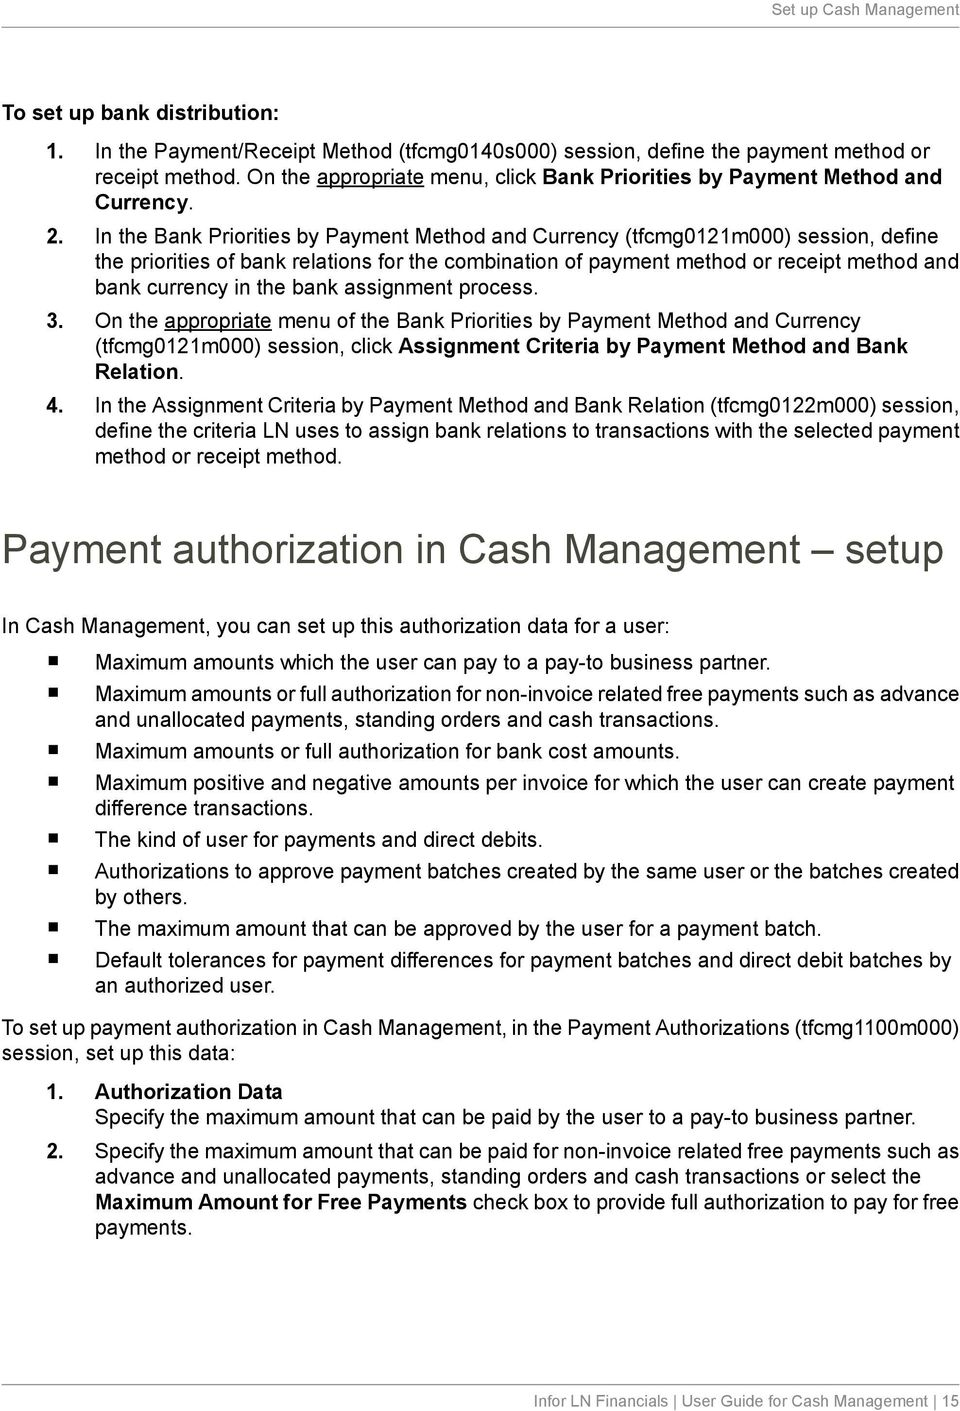 In the Bank Priorities by Payment Method and Currency (tfcmg0121m000) session, define the priorities of bank relations for the combination of payment method or receipt method and bank currency in the